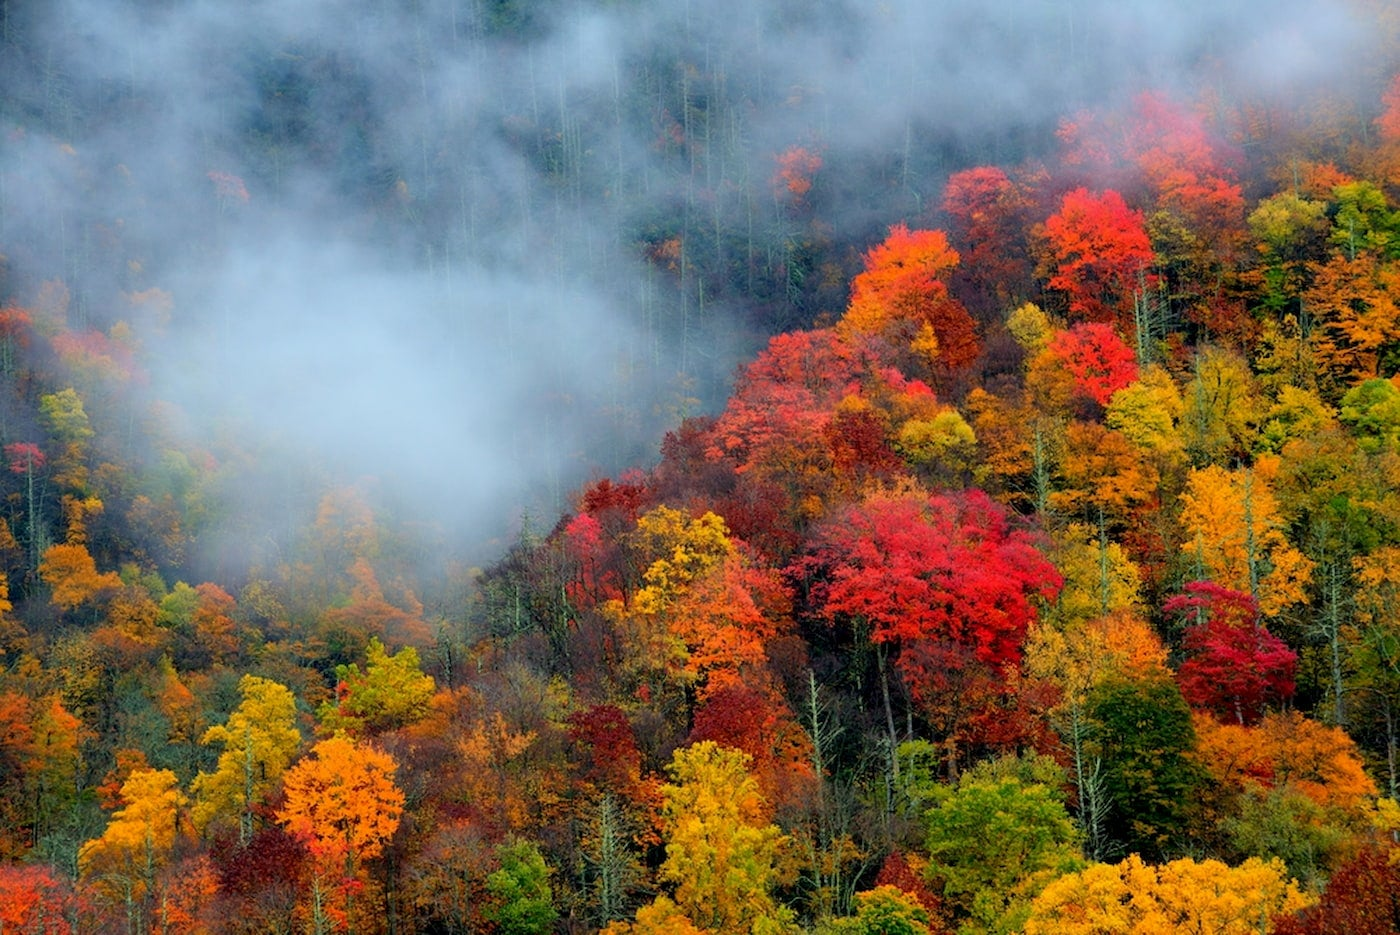 Autumn foliage in the great smoky mountains.